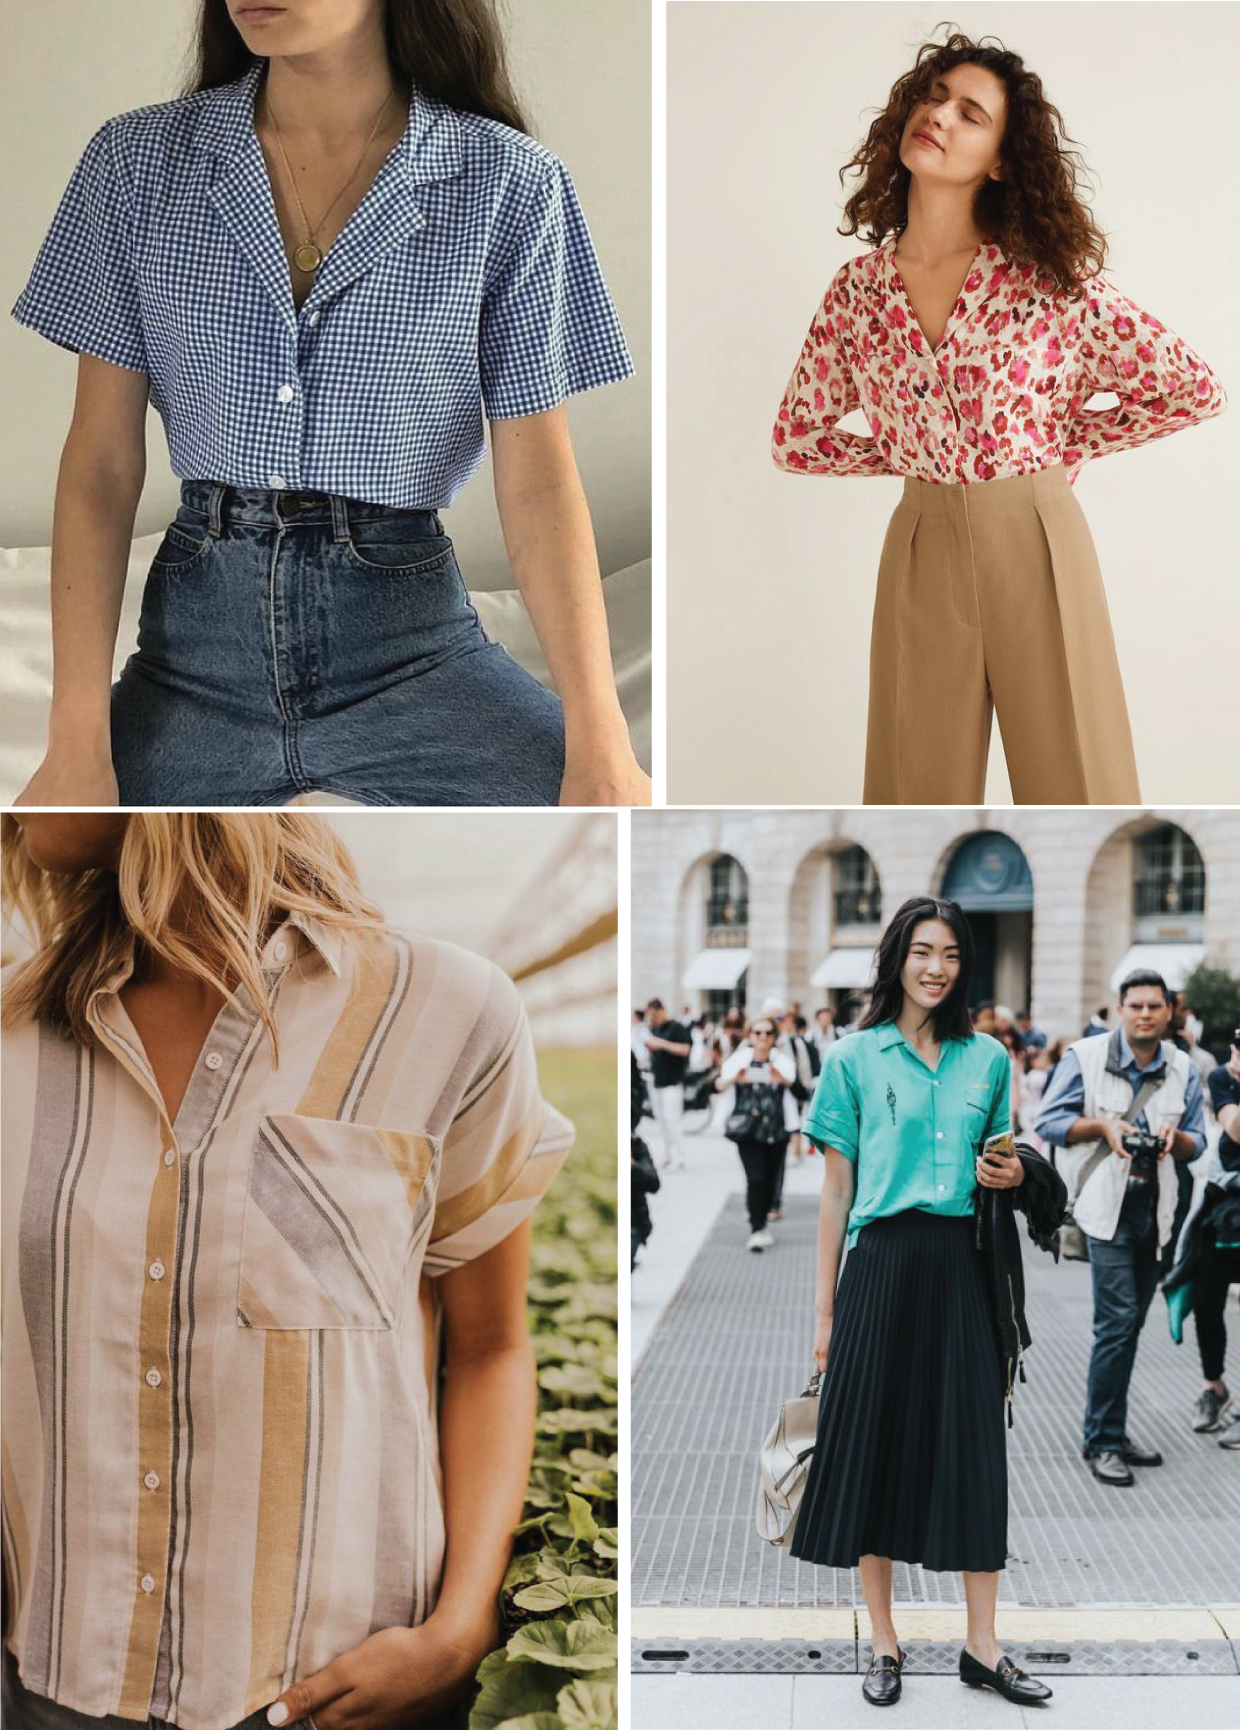 Camp Shirt Pattern : shirt, pattern, Inspiration, Shirt, Dress, Pattern, Oliver